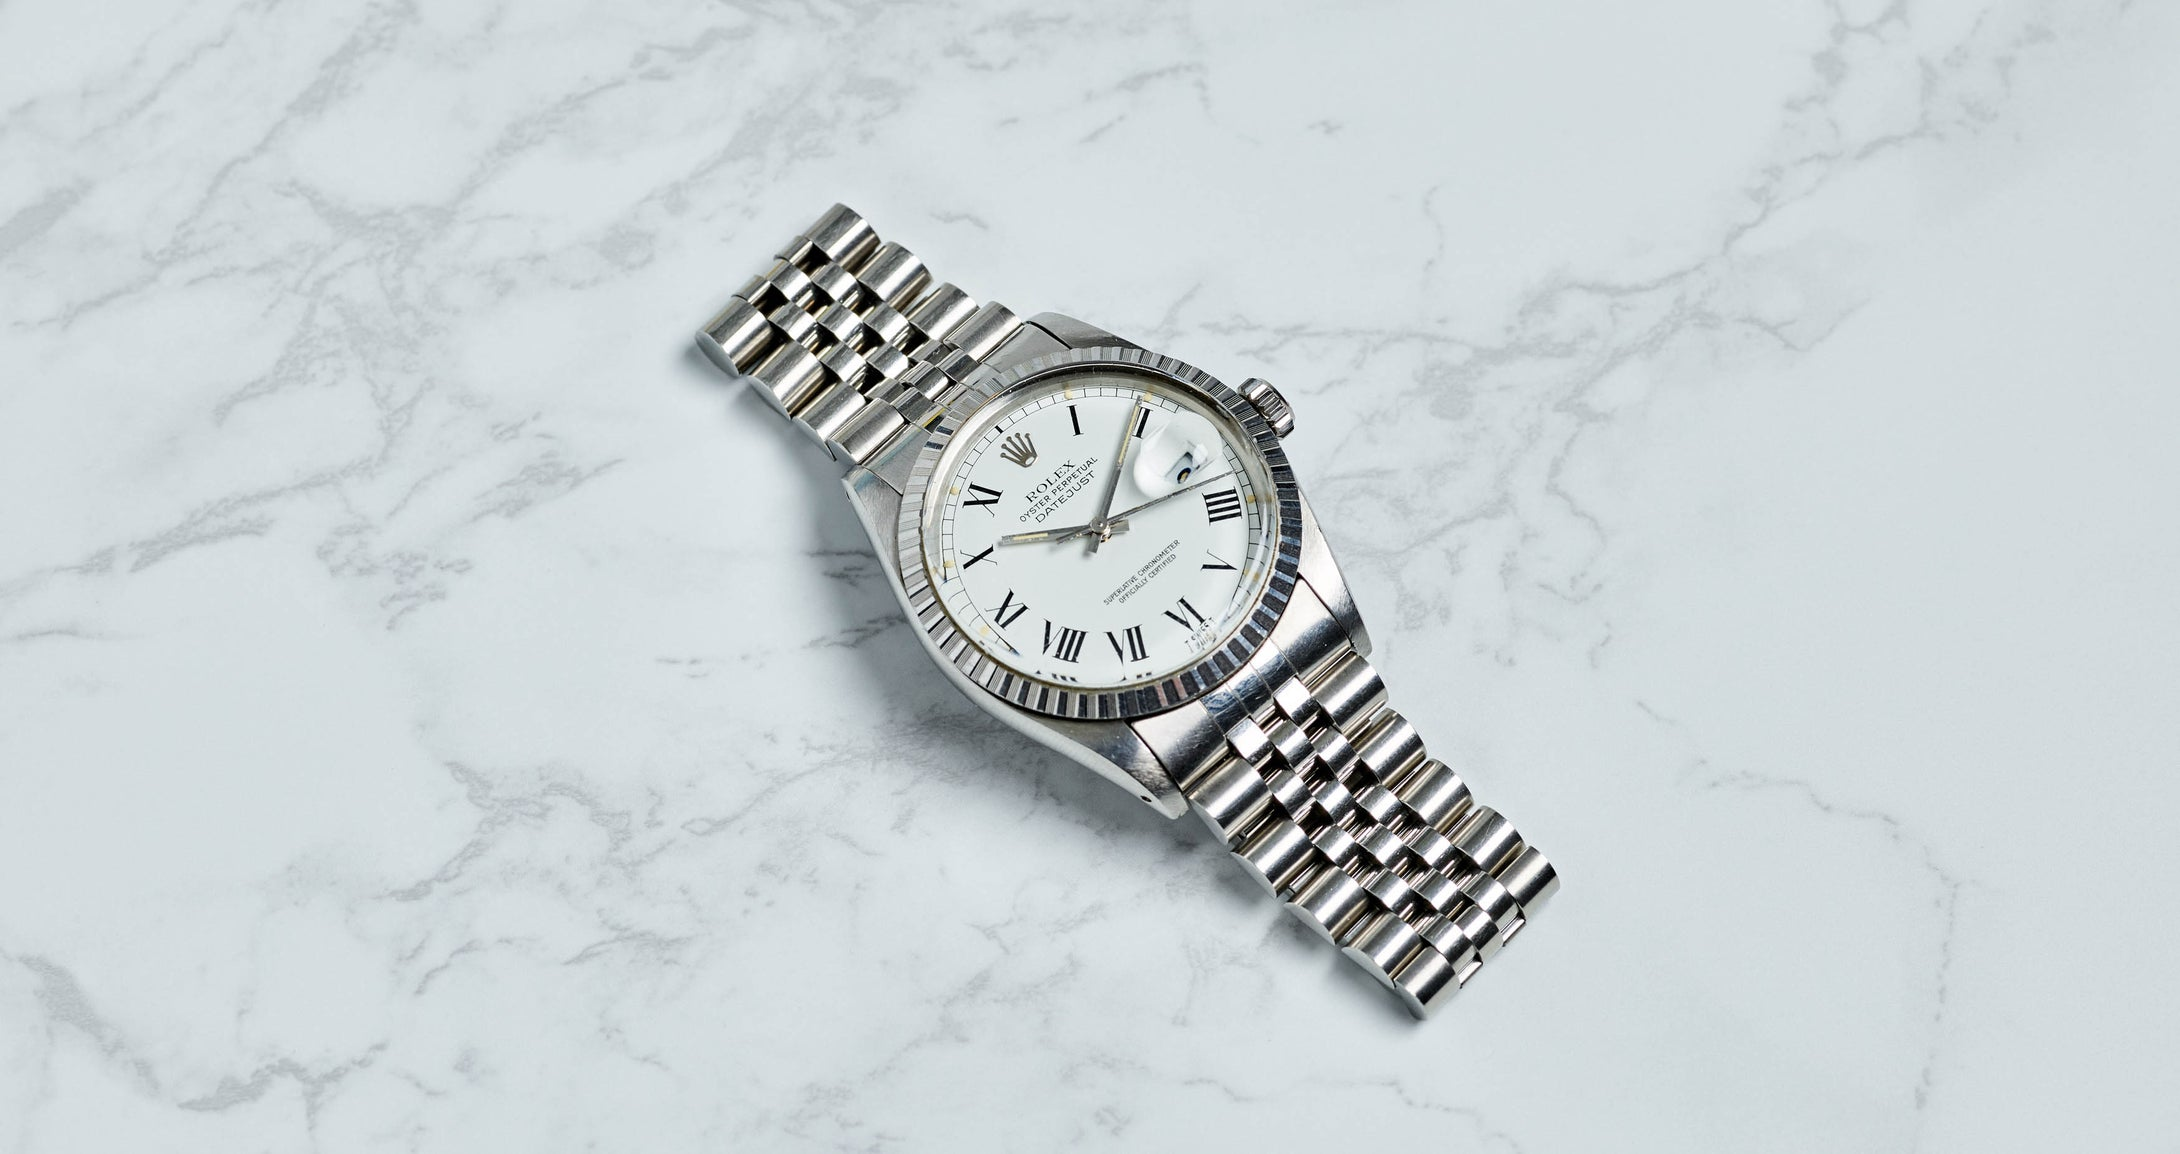 Rolex Stainless Steel Oyster Perpetual White Buckley Datejust Vintage Watch | Veralet